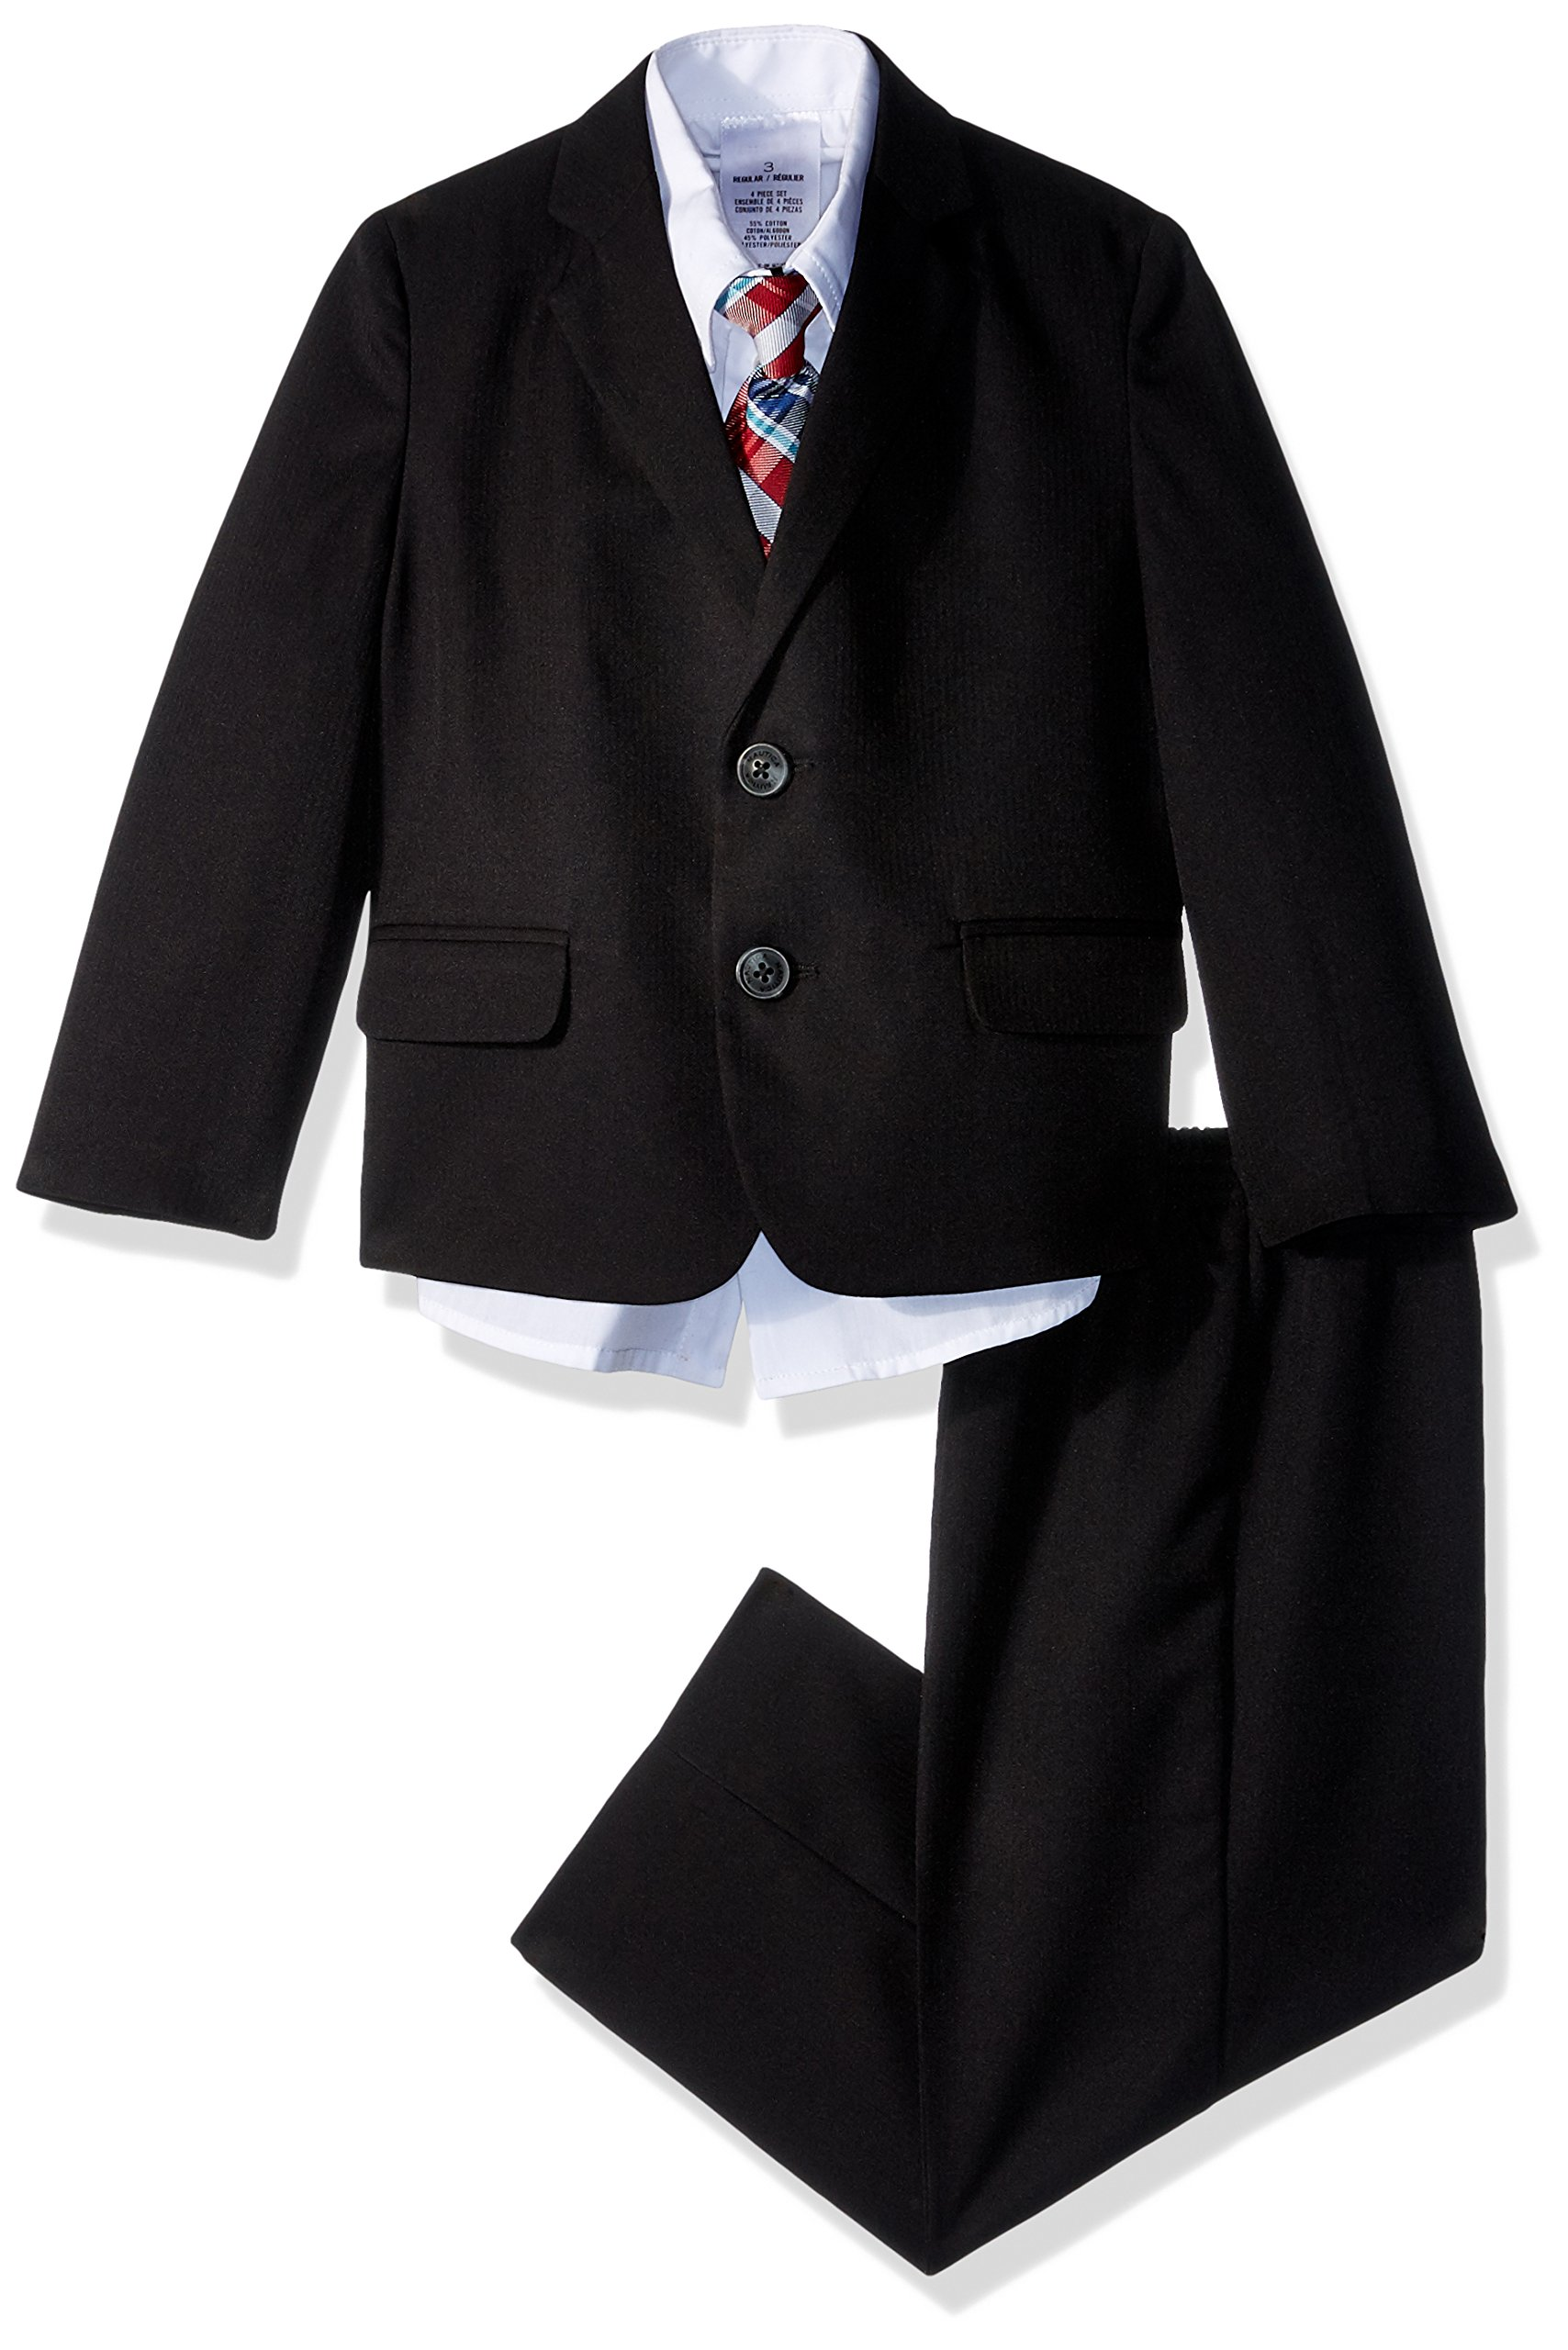 Nautica Toddler Boys' Suit Set with Jacket, Pant, Shirt, and Tie, Black Herringbone, 4T/4